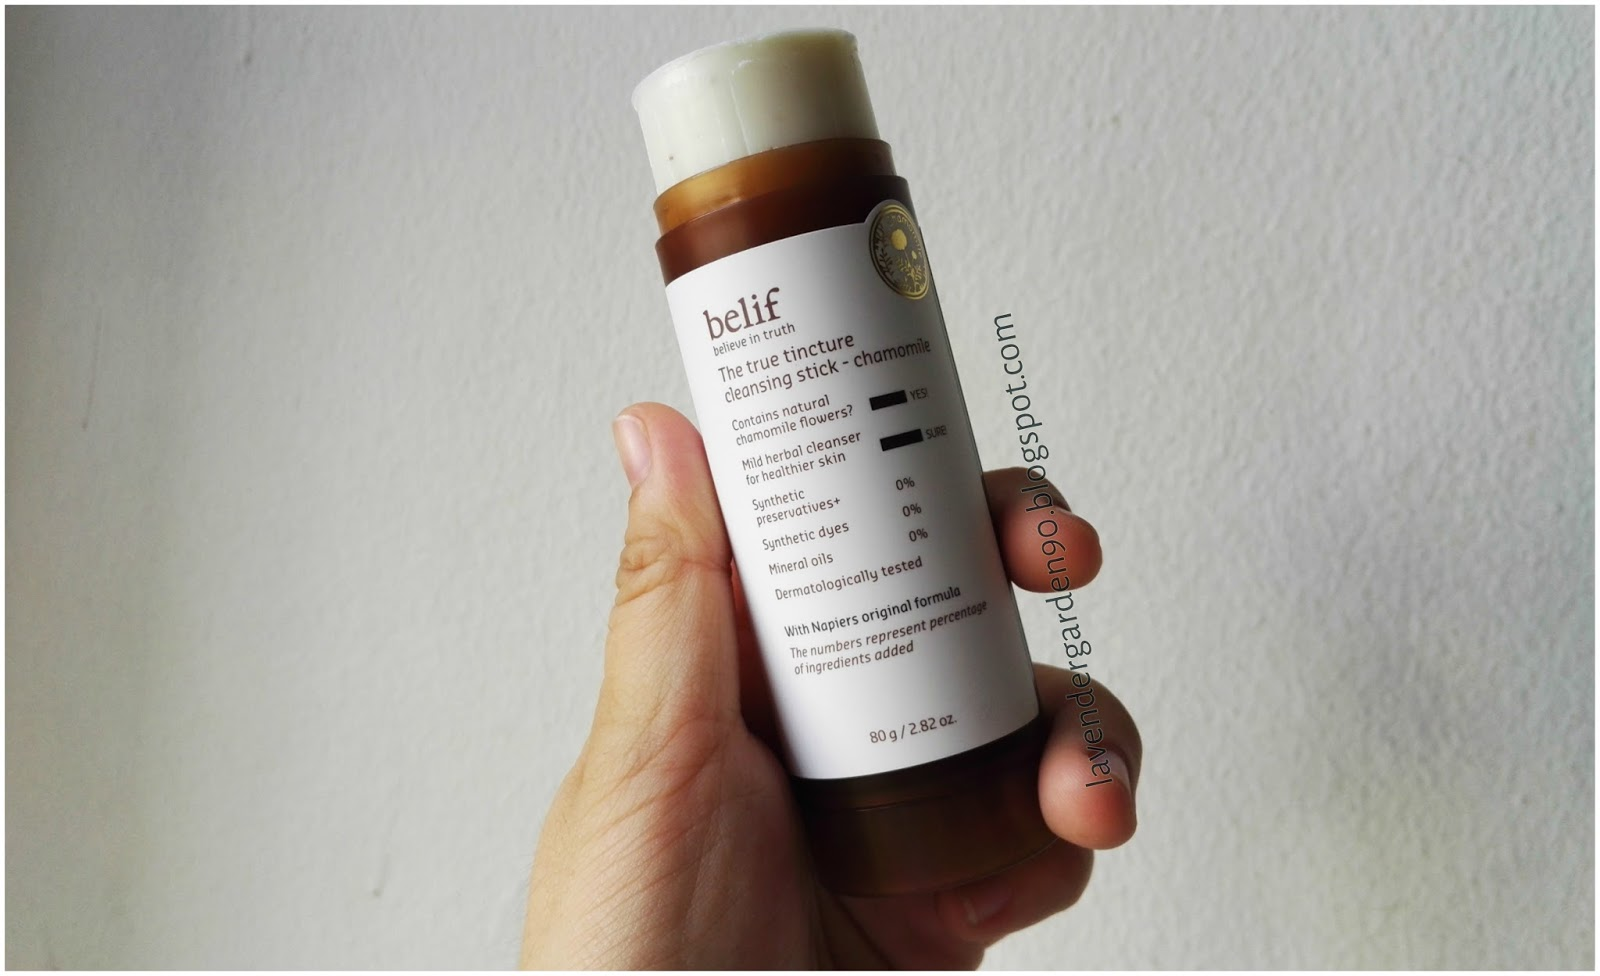 The True Tincture Cleansing Stick - Chamomile by belif #7